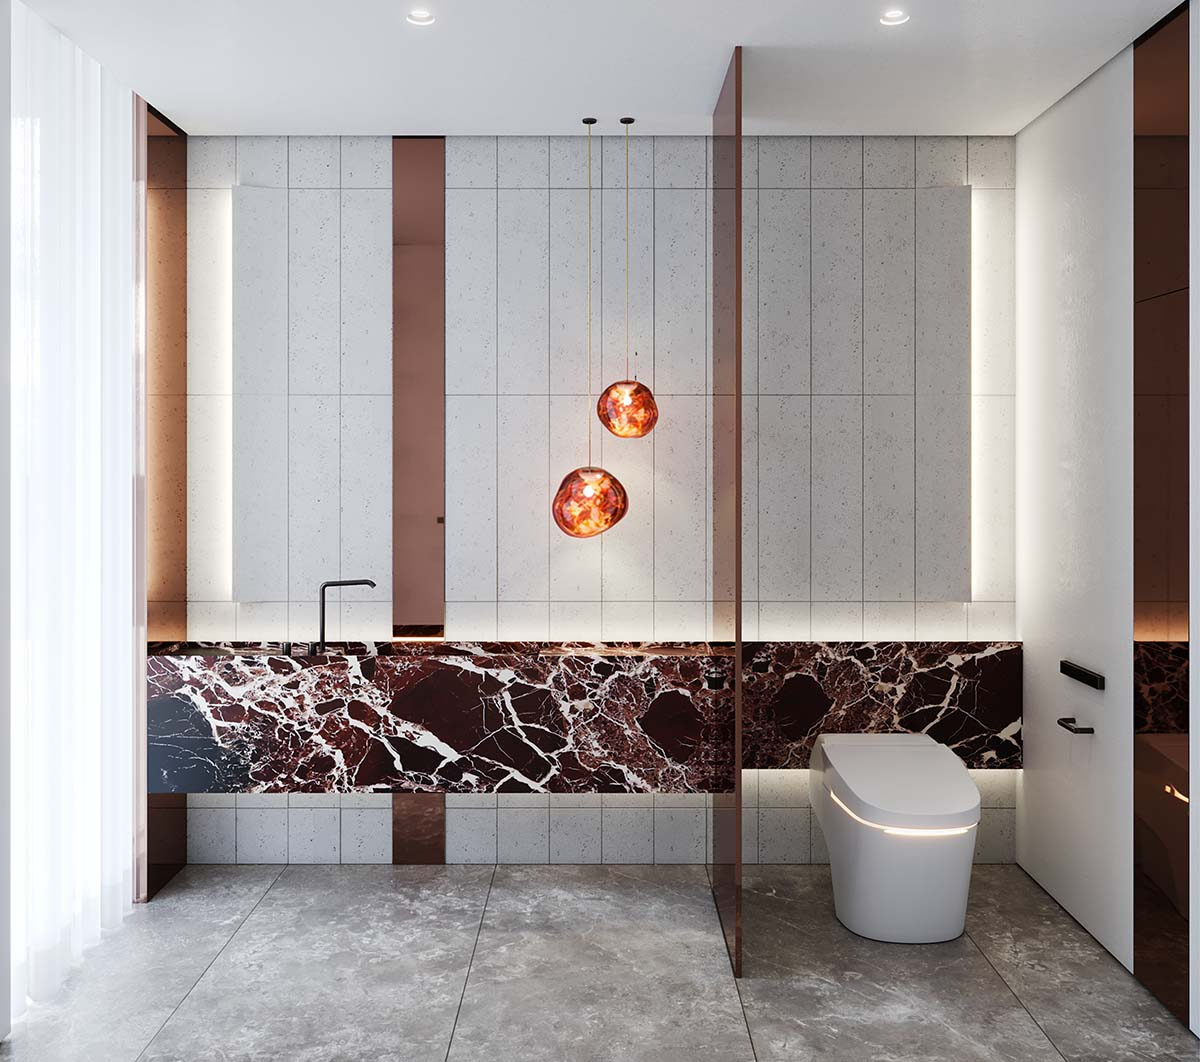 Bathroom of luxury private residential in Rose Bay using Stone Rosso marble hone and melt pendant lights by Tom Dixon Studio